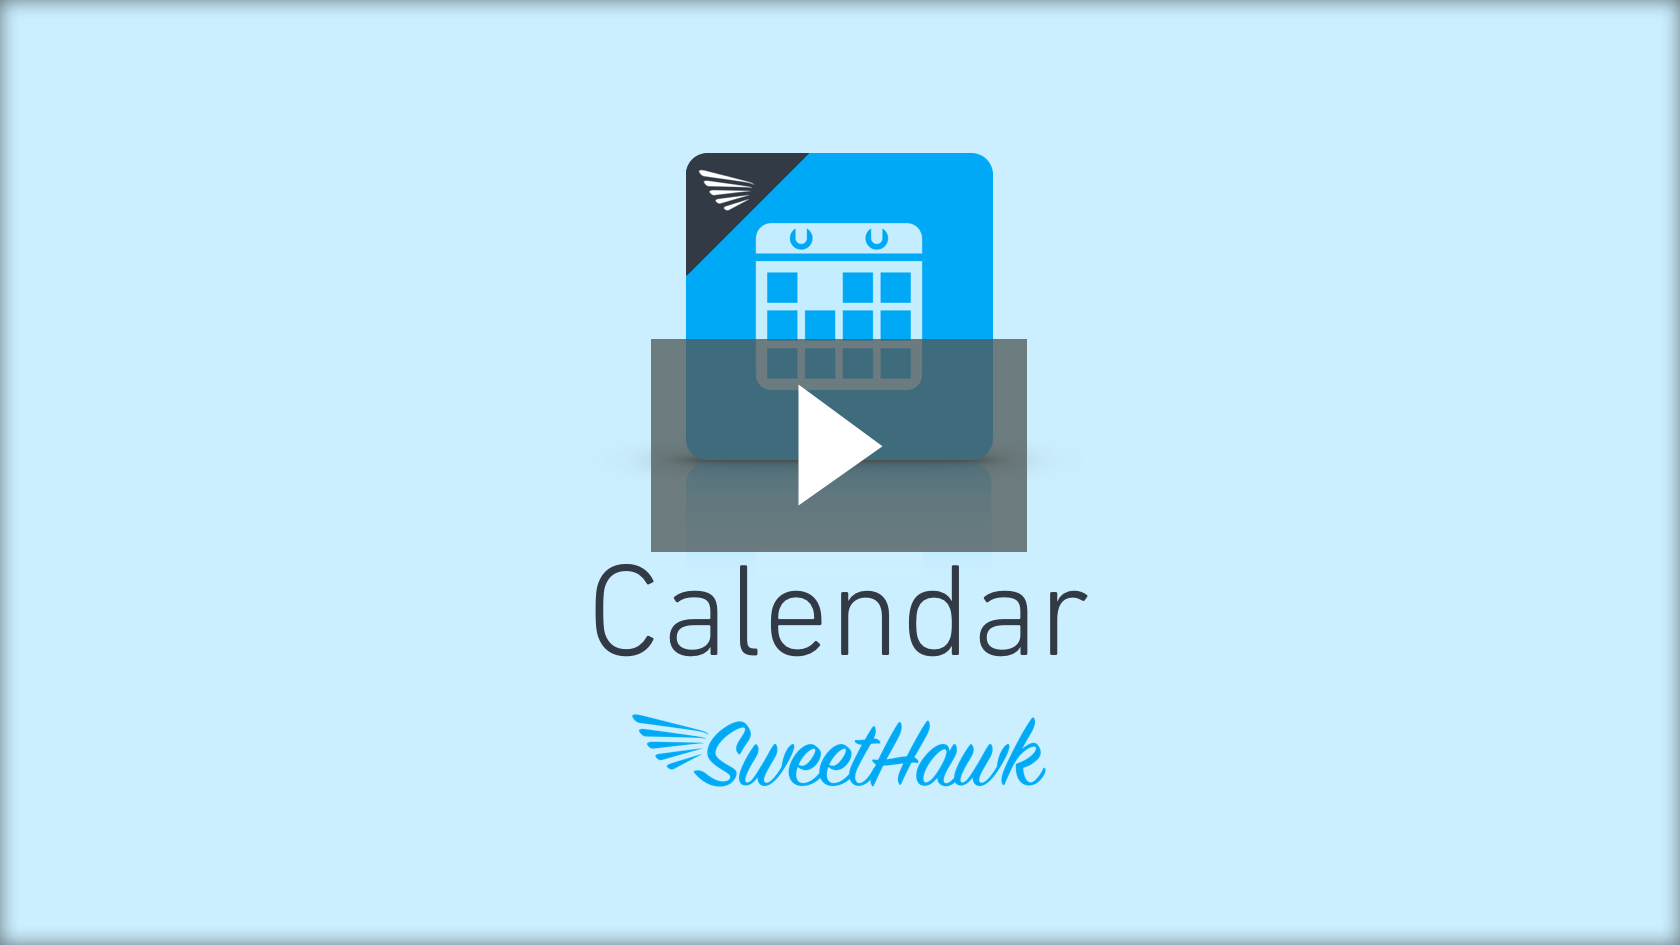 Watch the Calendar app video